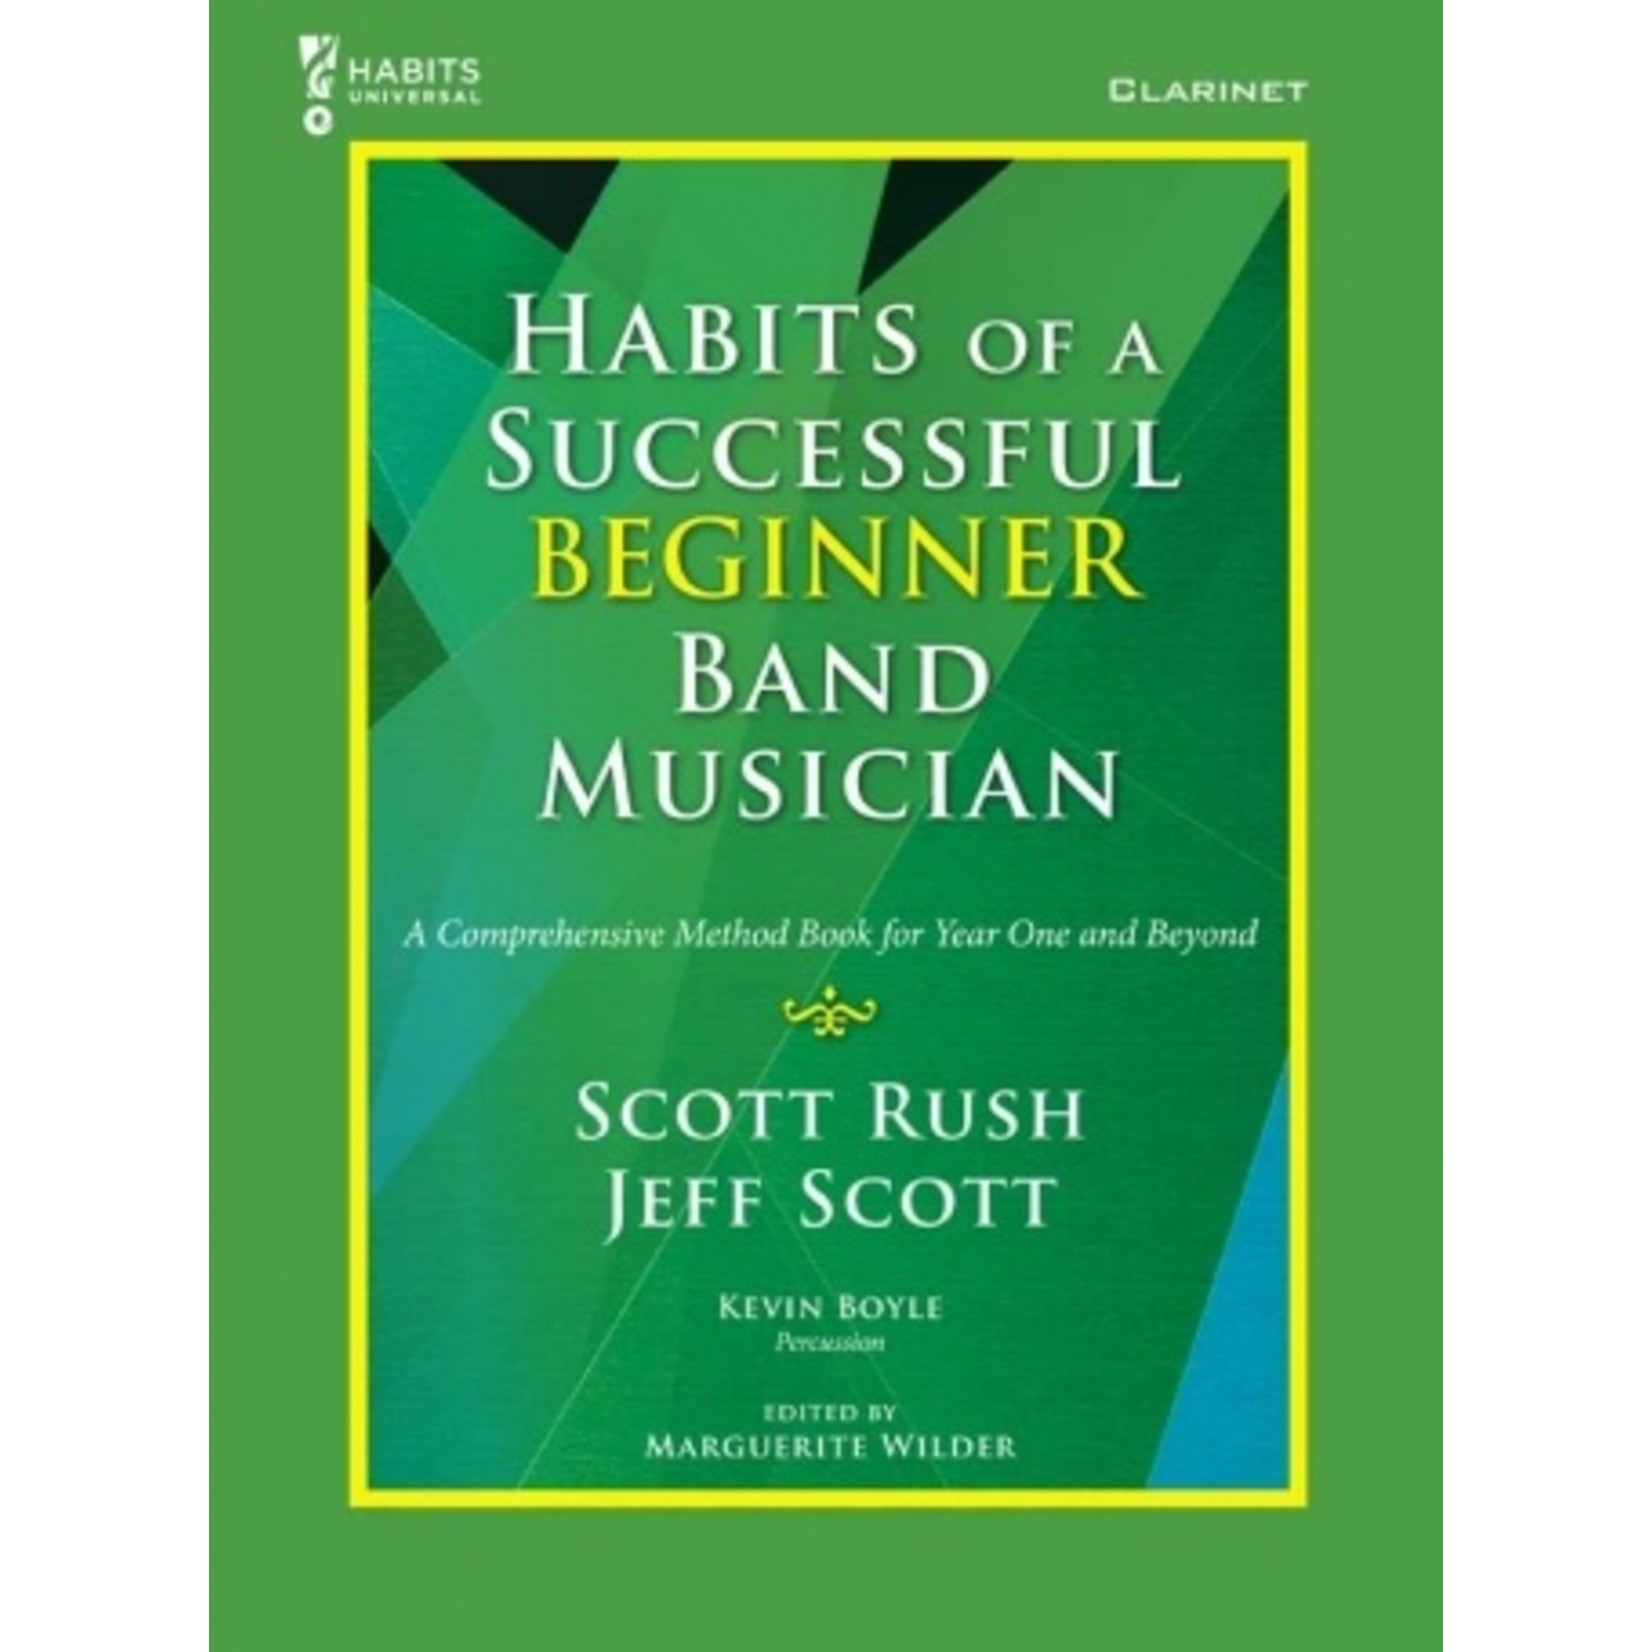 Habits of a Successful Beginner Band Musician - Clarinet